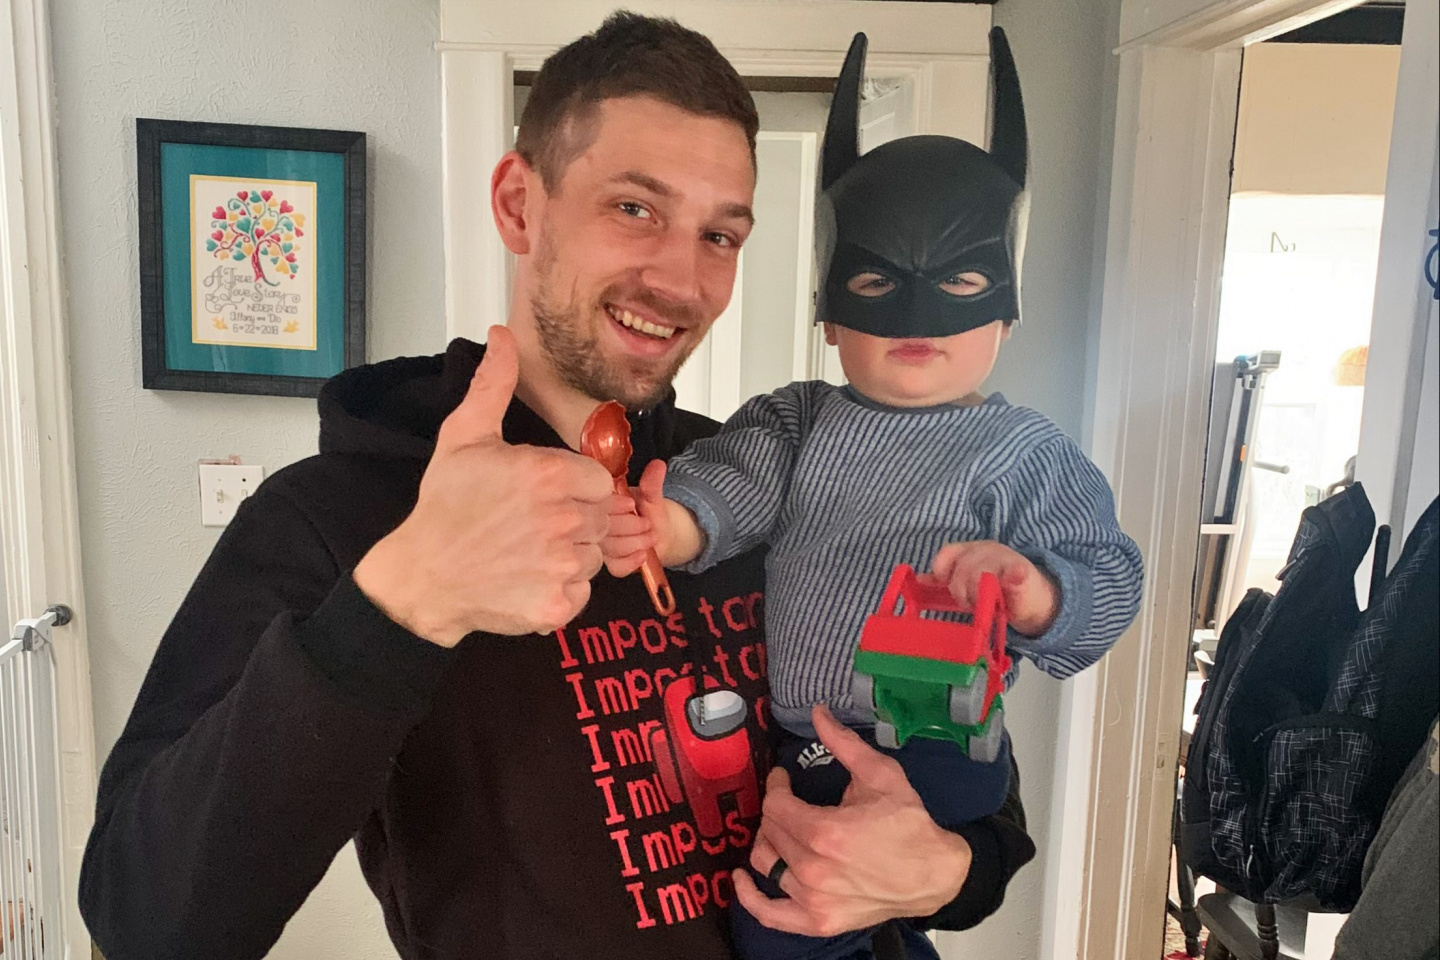 Dionysian Josts gives a thumbs up while holding his son, Gabriel, who is wearing a Batman mask.